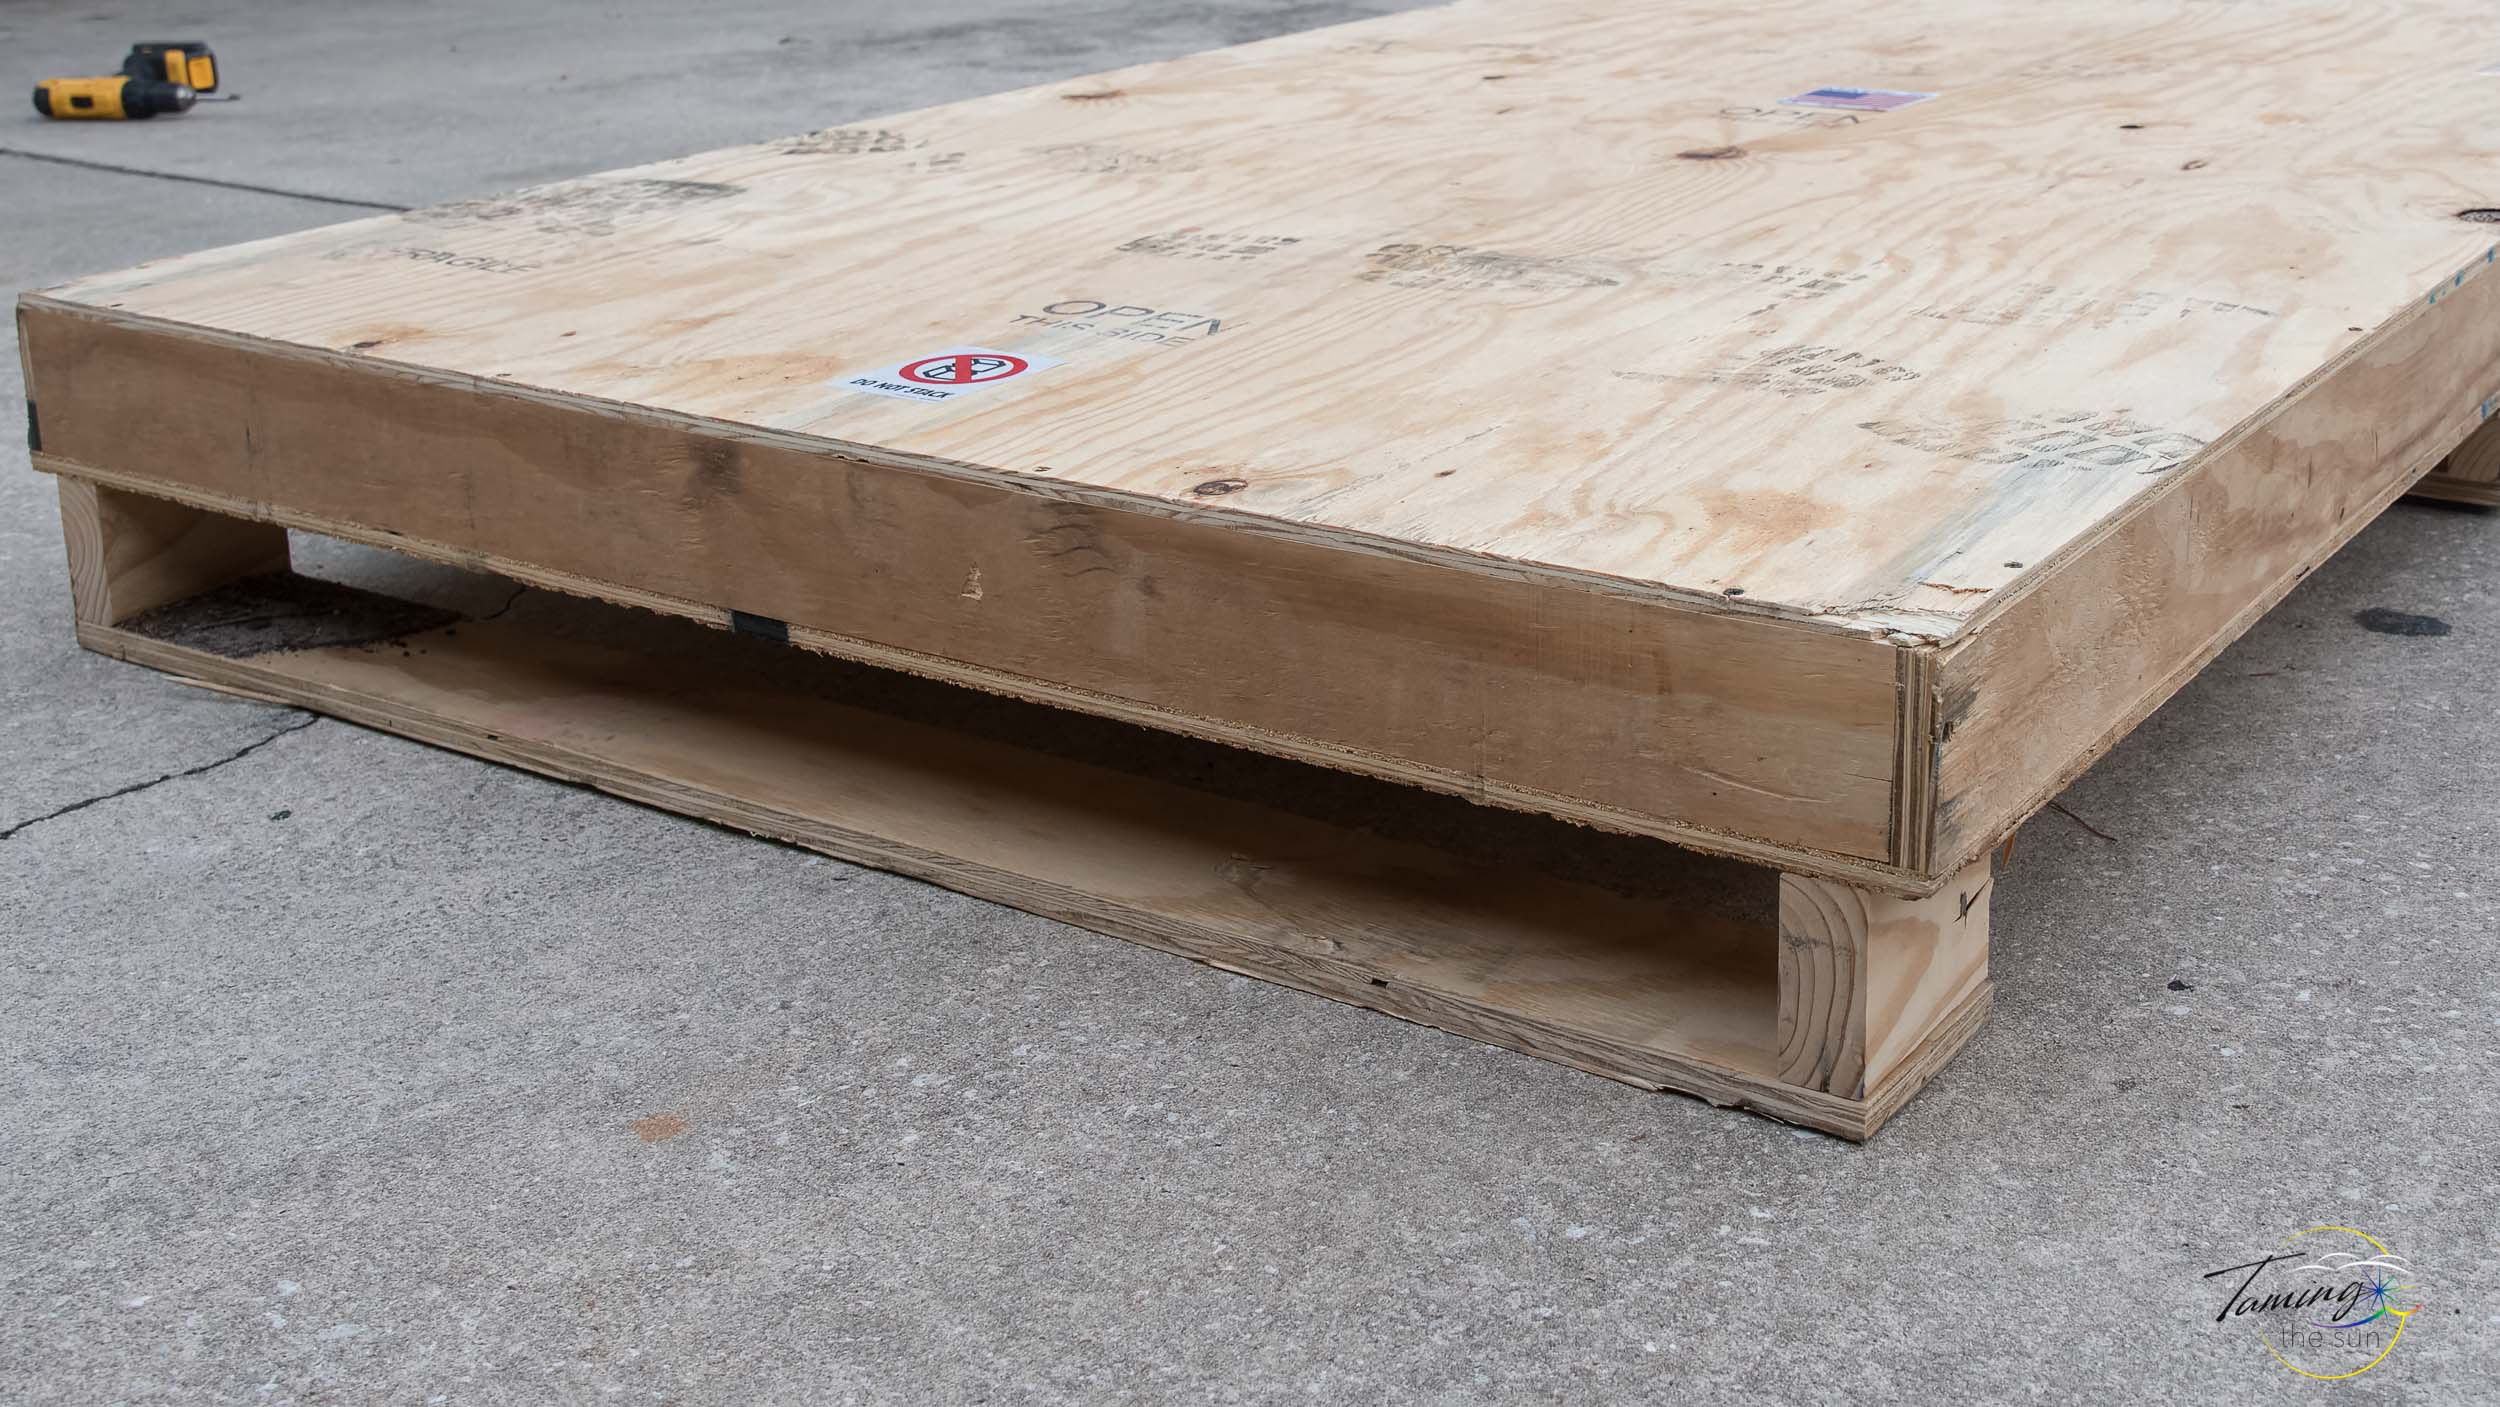 Near Earth Comet 80x45 Shipping Crate 1